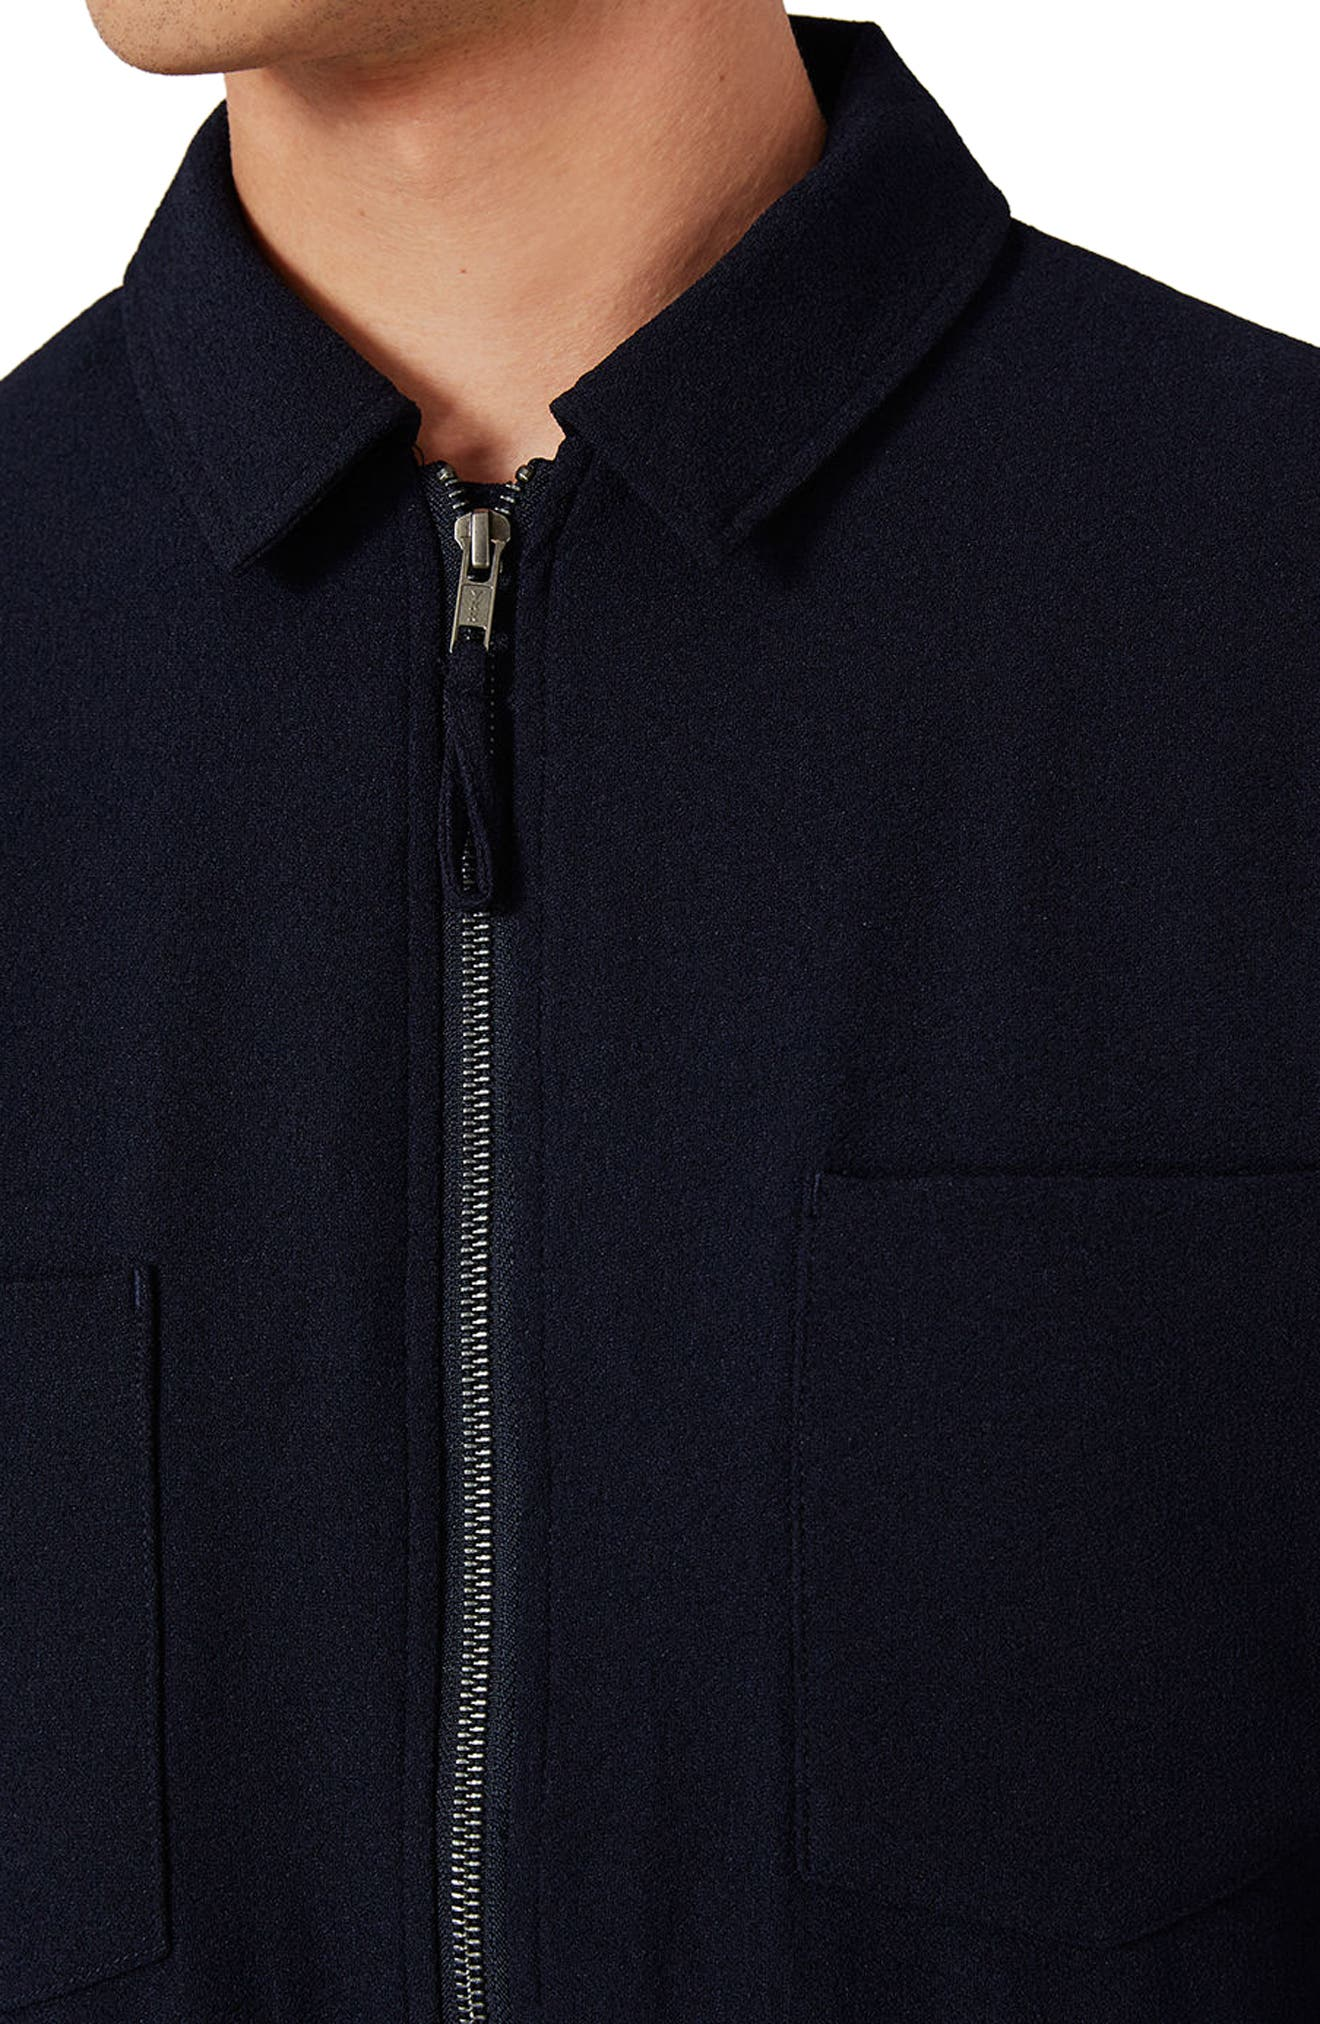 Lightweight Smart Jacket,                             Alternate thumbnail 5, color,                             Navy Blue